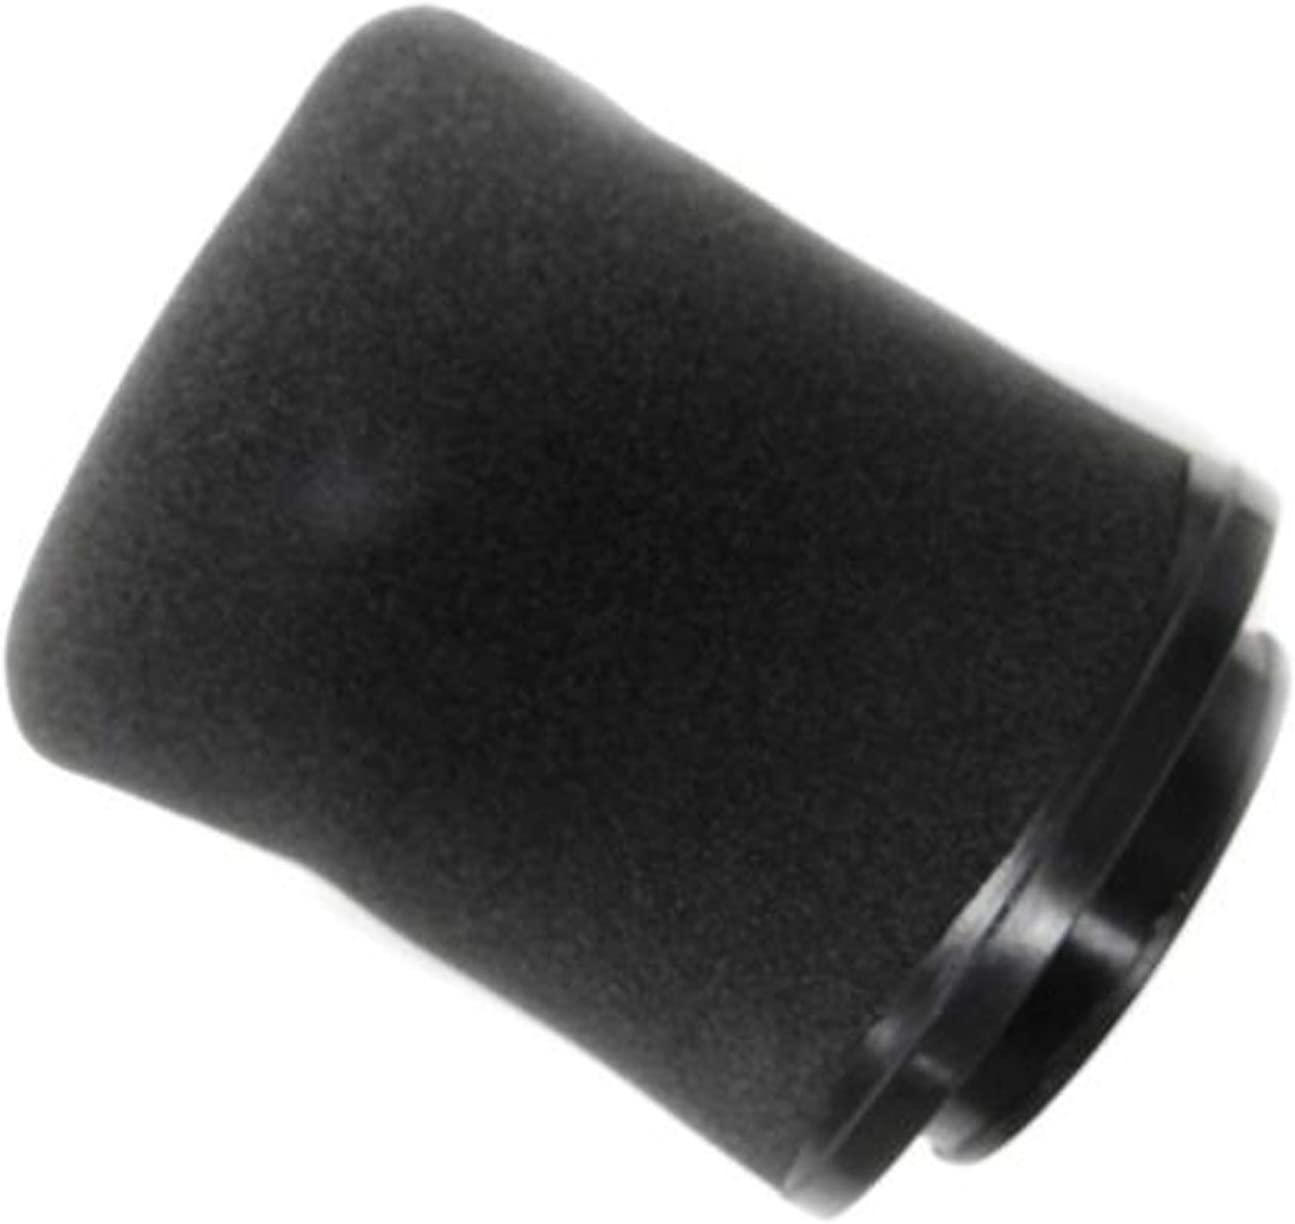 Can-Am High quality Price reduction 707800216 Oem New